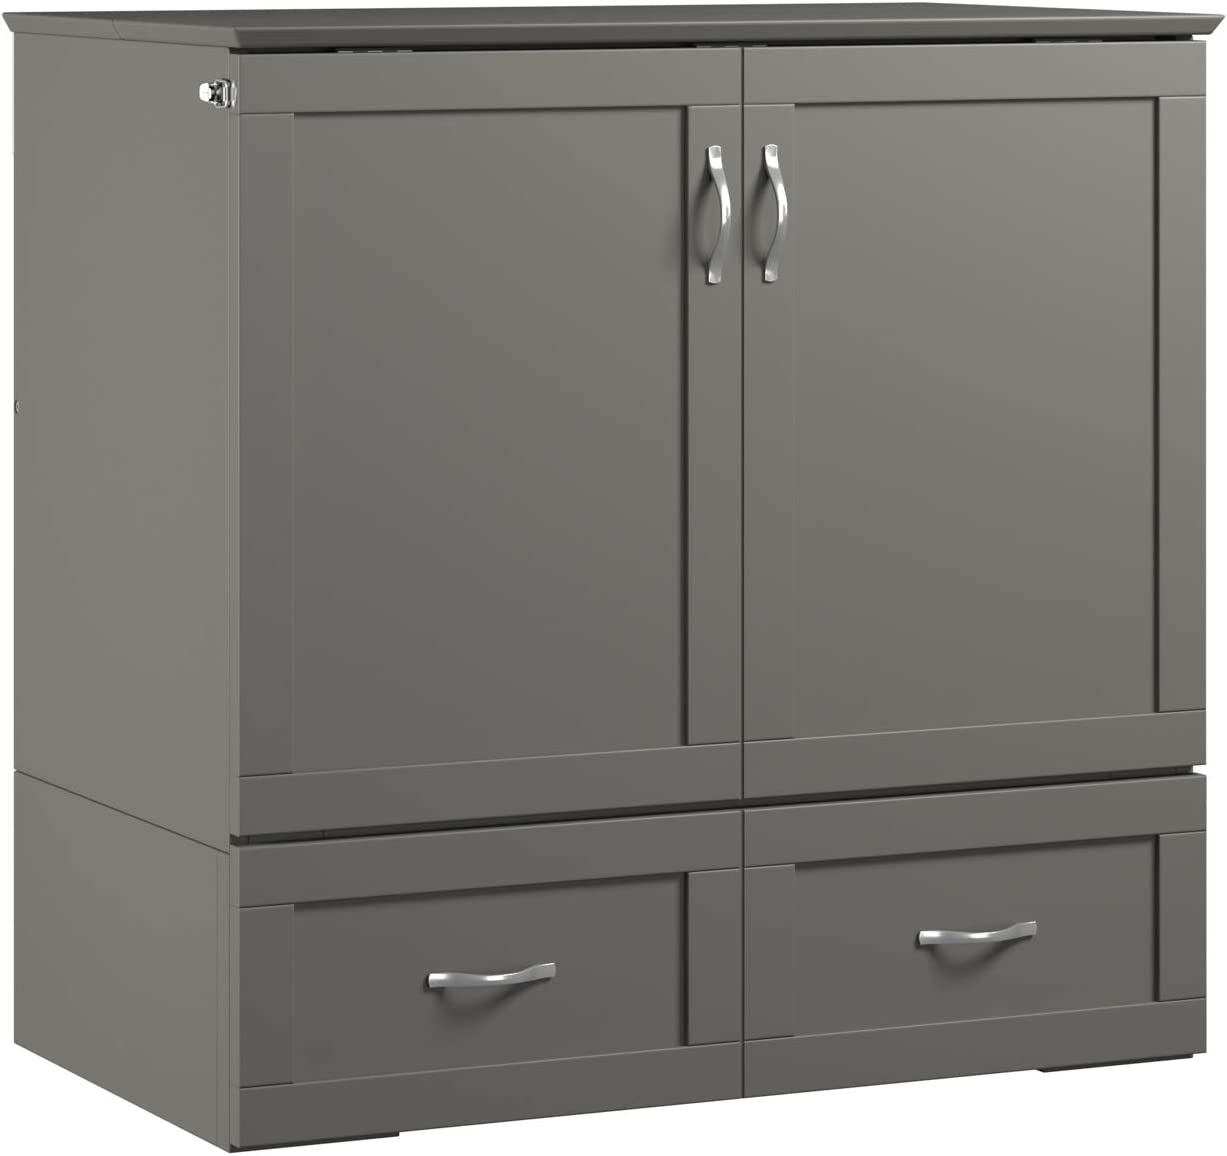 Atlantic Furniture Hamilton Murphy Bed Chest with Charging Station, Twin XL, Grey